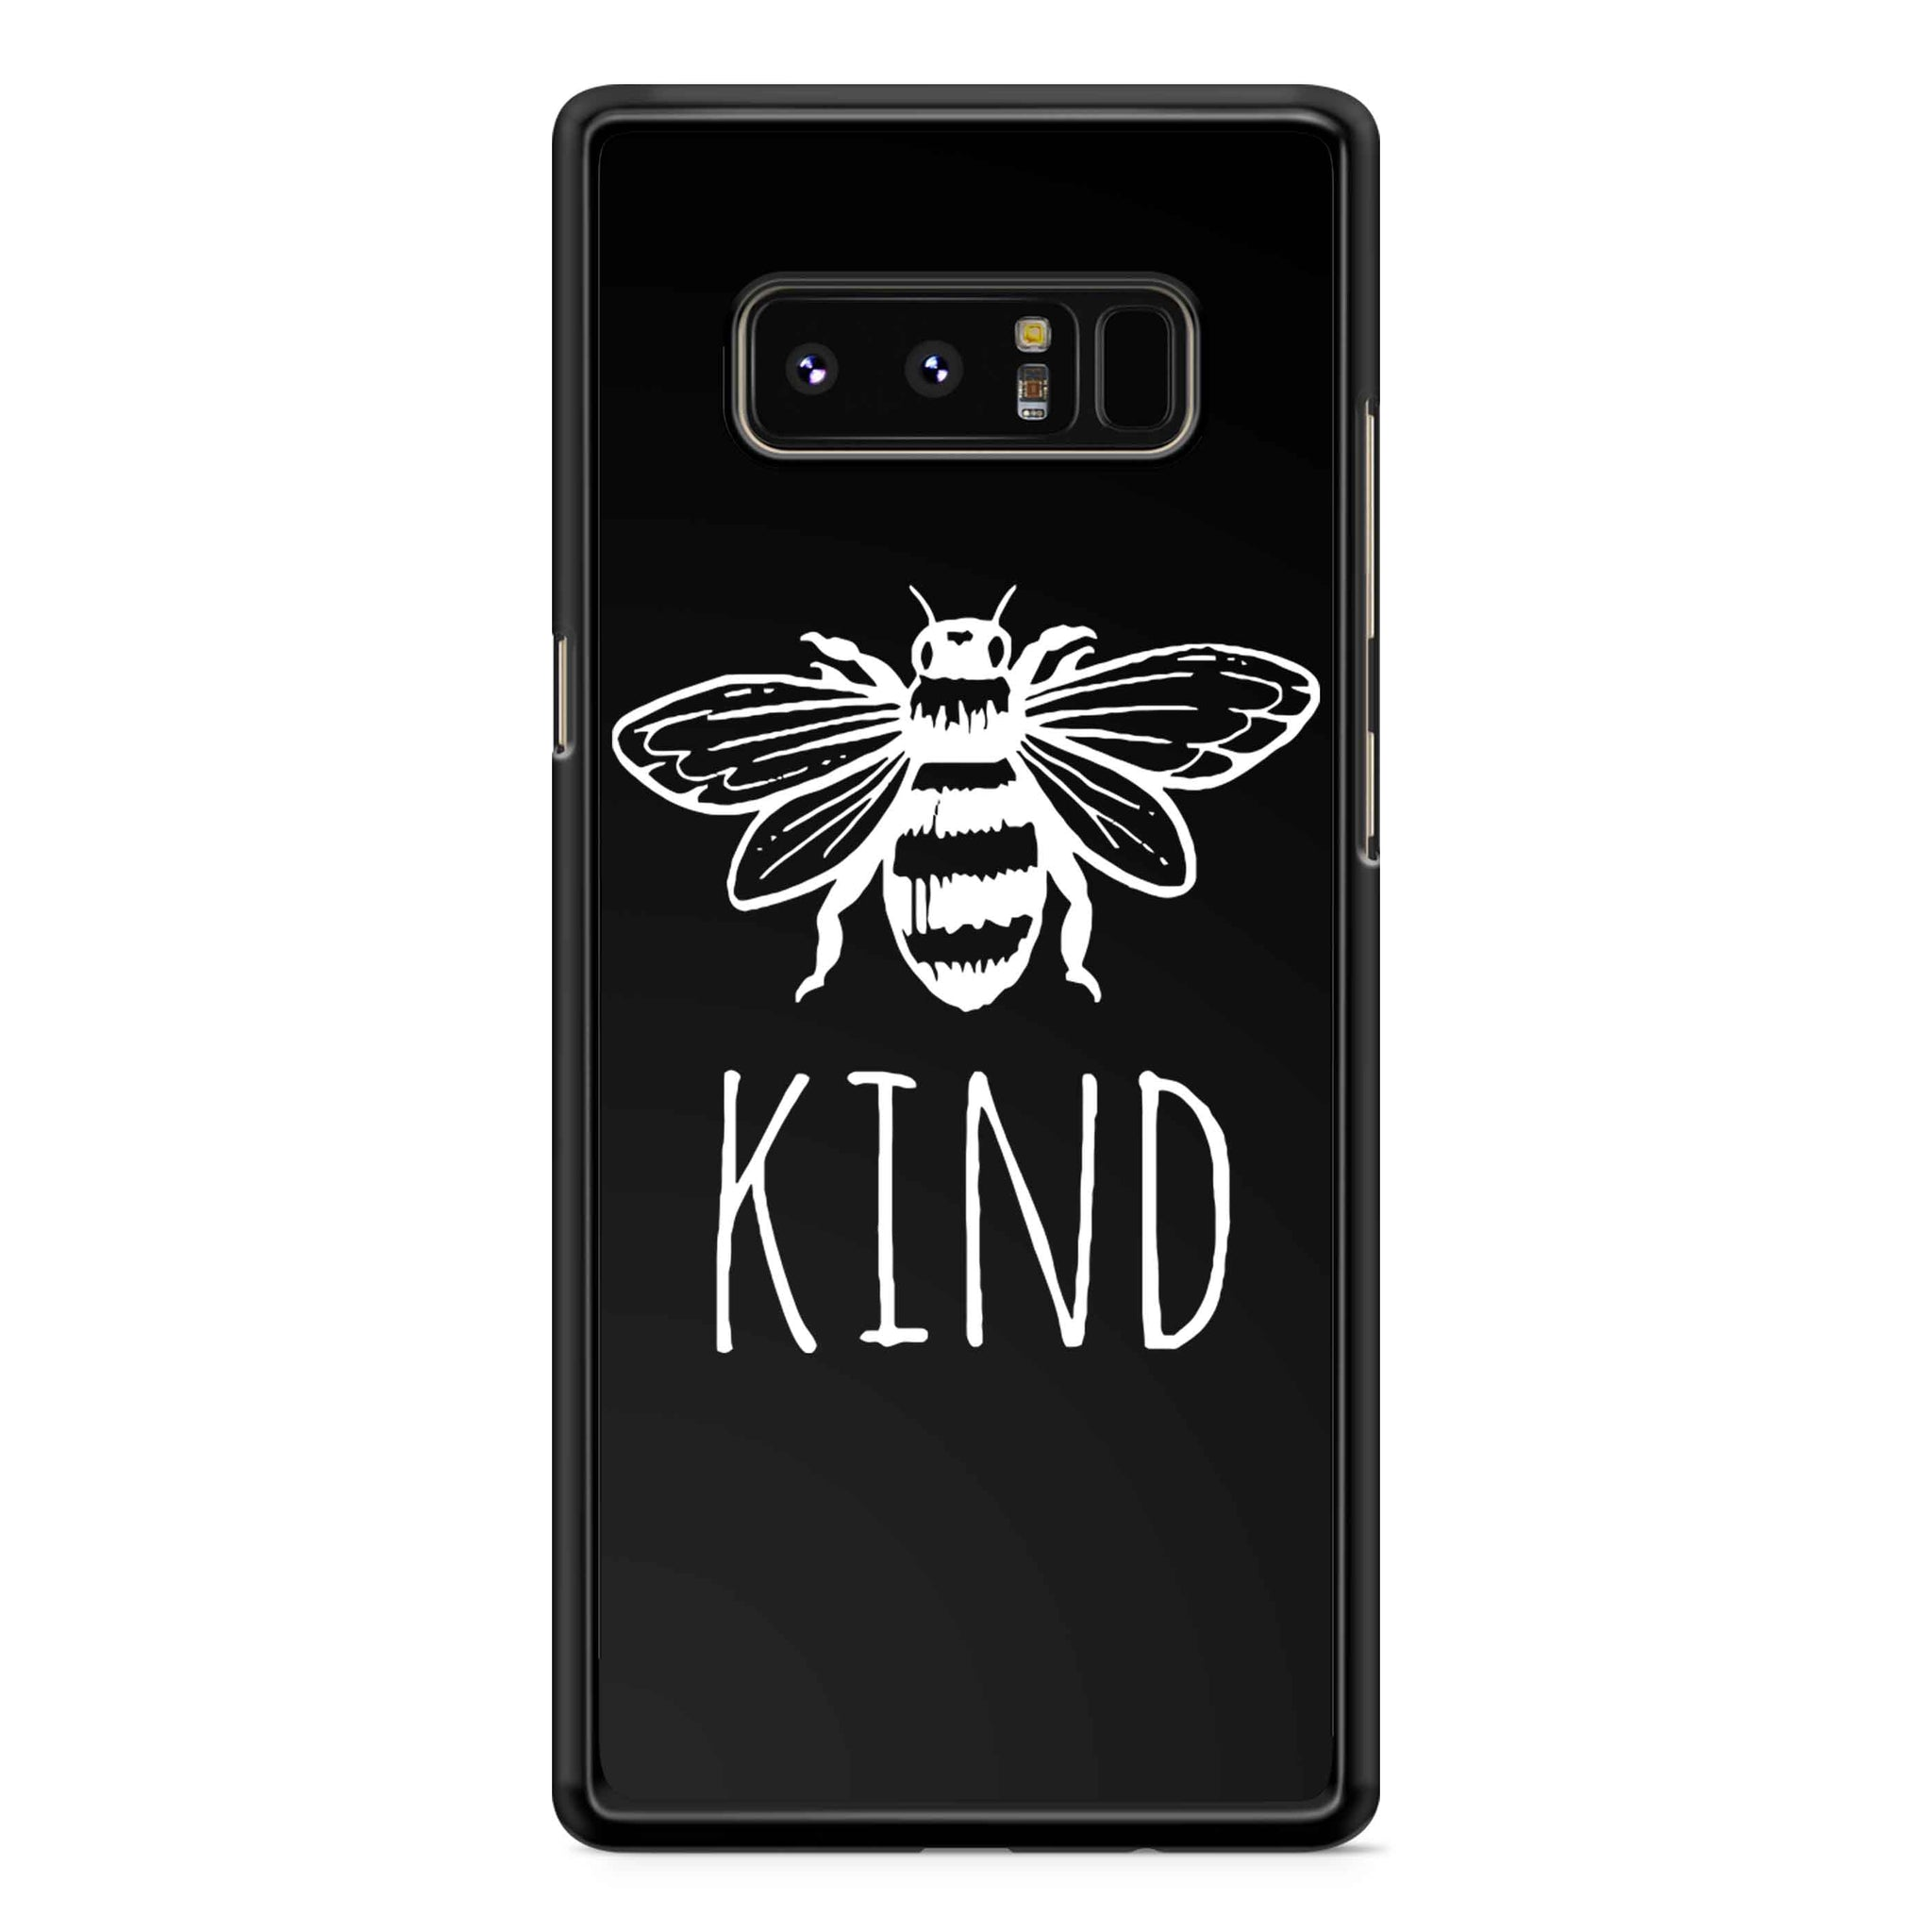 Bee Kind Samsung Galaxy Note 7 /Note 8 / Note 9 Case